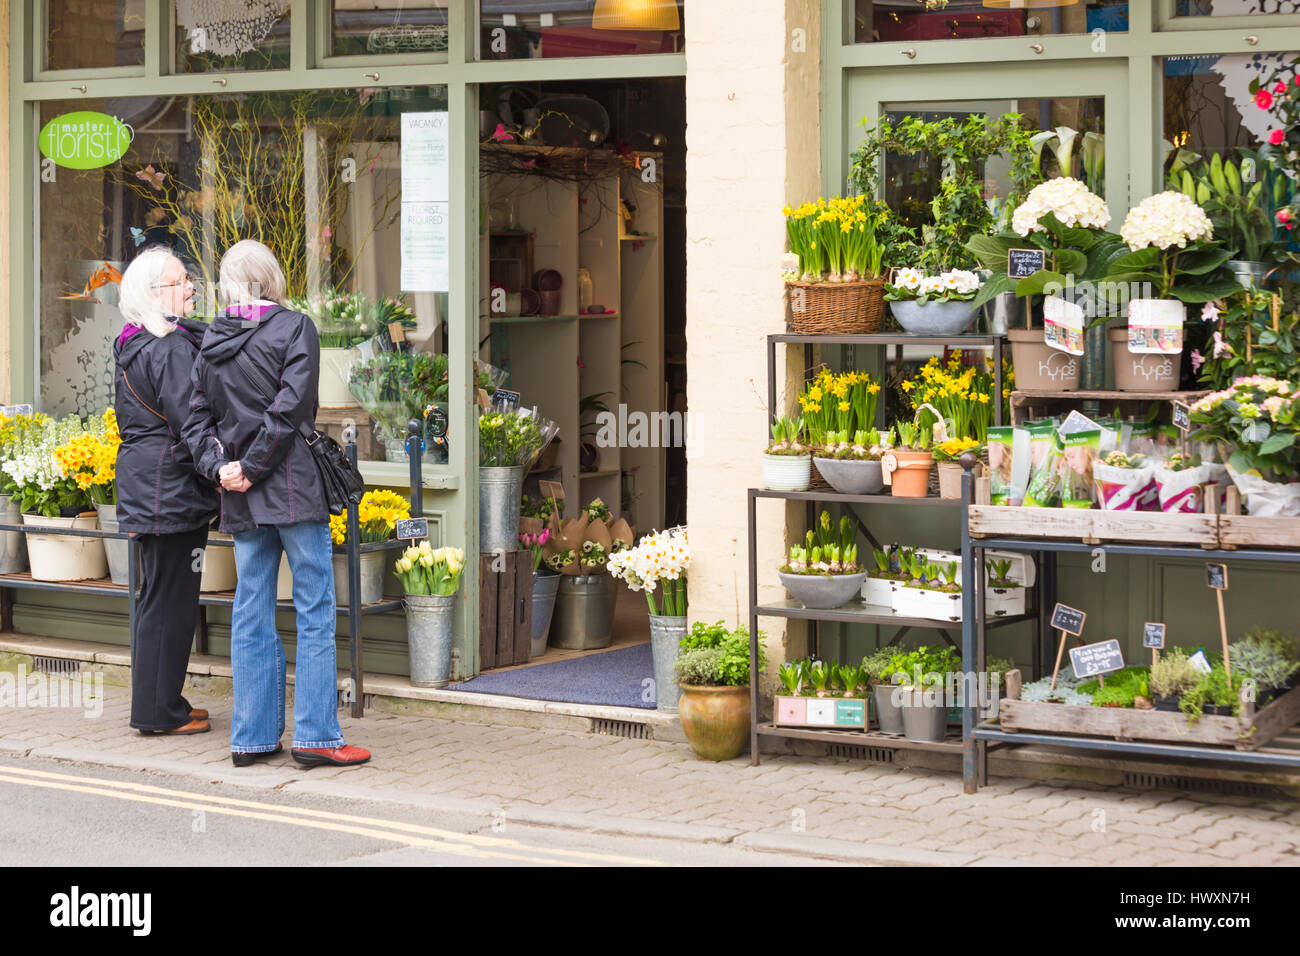 Cirencester oops a daisy florist shop full of spring flowers cirencester oops a daisy florist shop full of spring flowers ideal for mothers day as couple of women look in window at cirencester in march izmirmasajfo